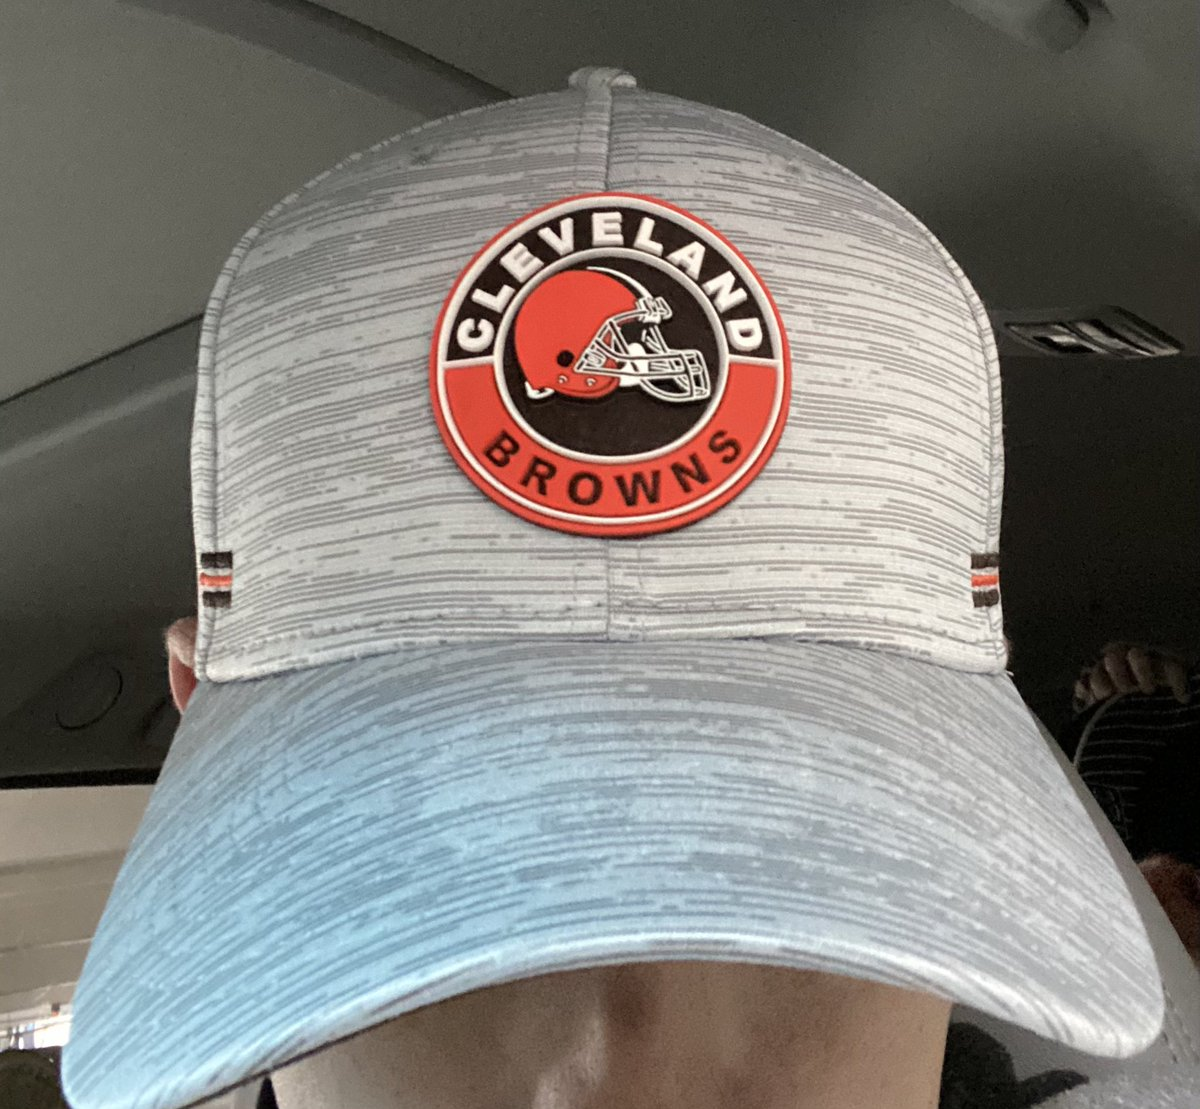 I've watched every #Browns game as far back as I can remember, but abstained from buying any merch for the past ten years. It was my way to protest, I guess.   On #NationalHatDay I ended my protest.